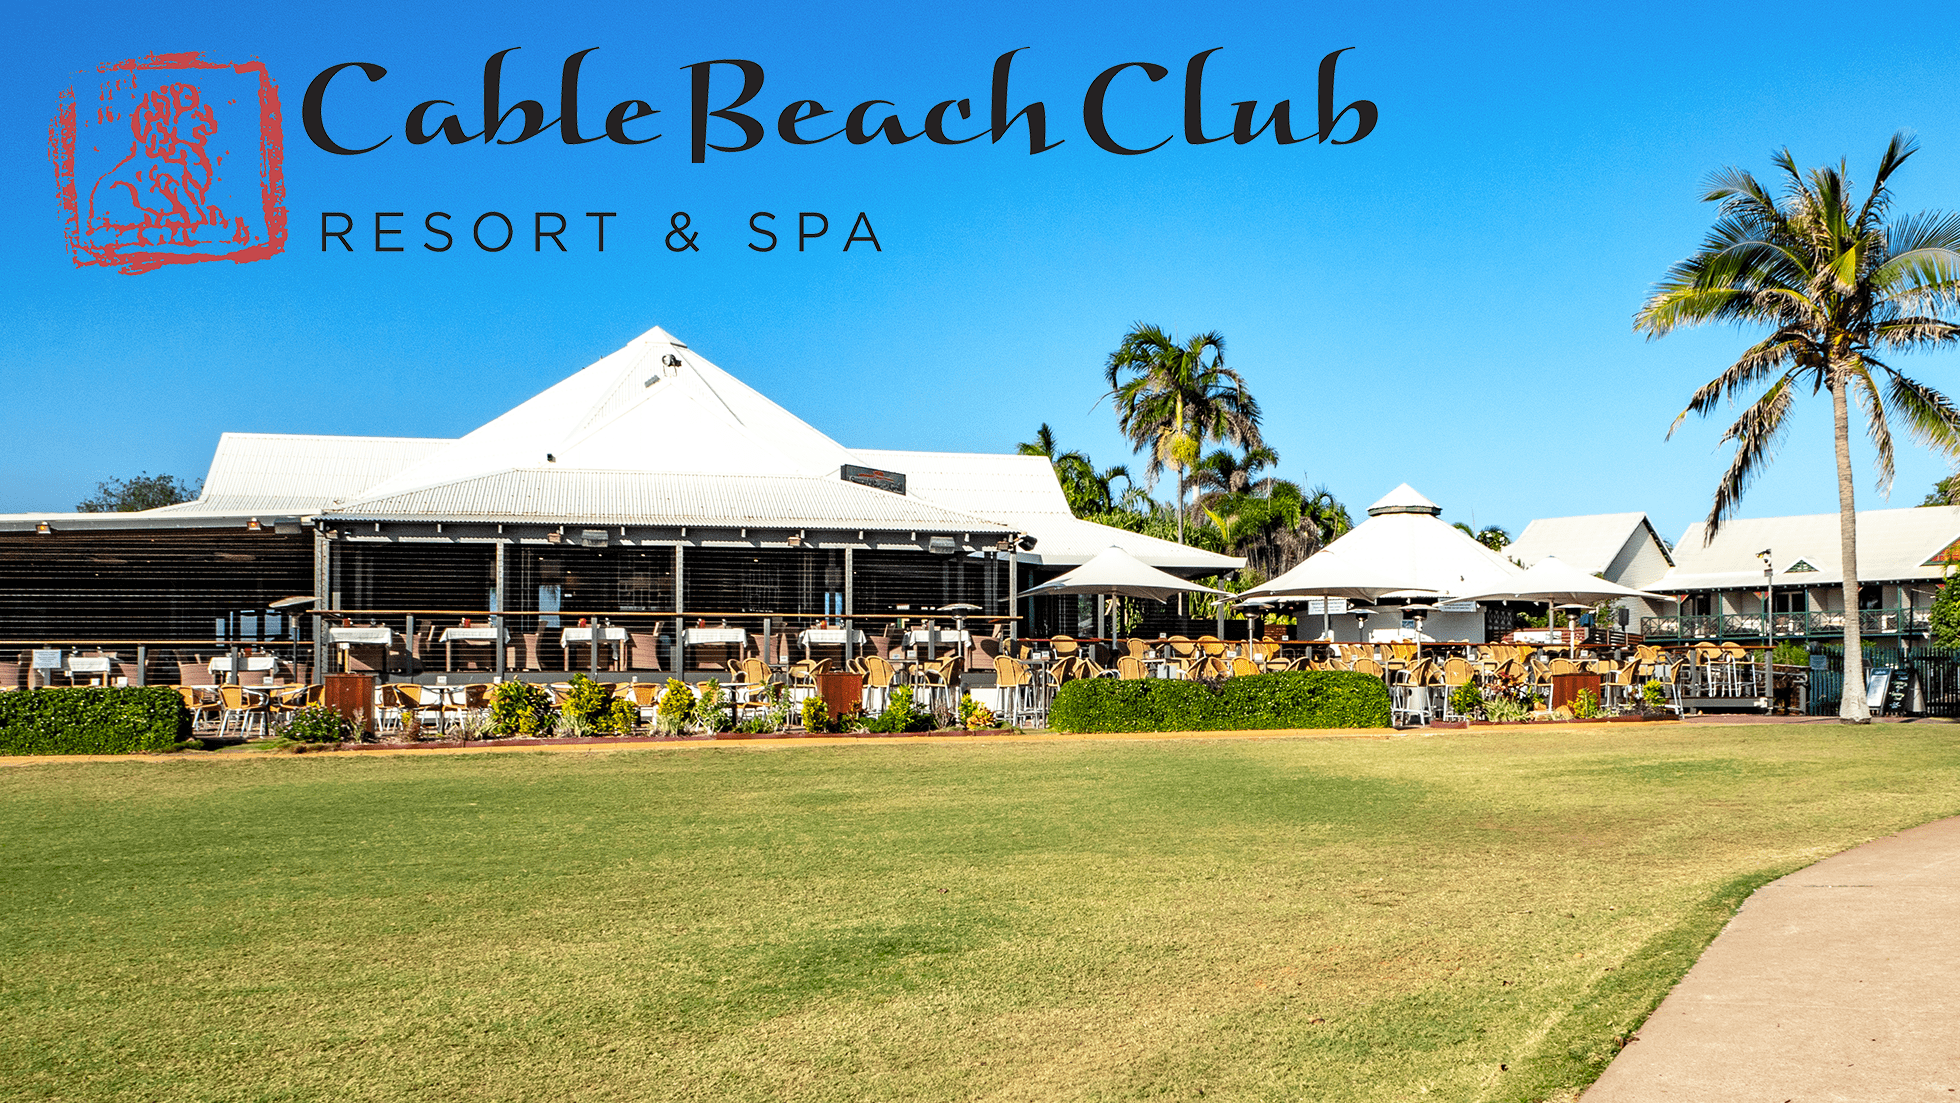 Cable Beach Club Resort & Spa Review 2019